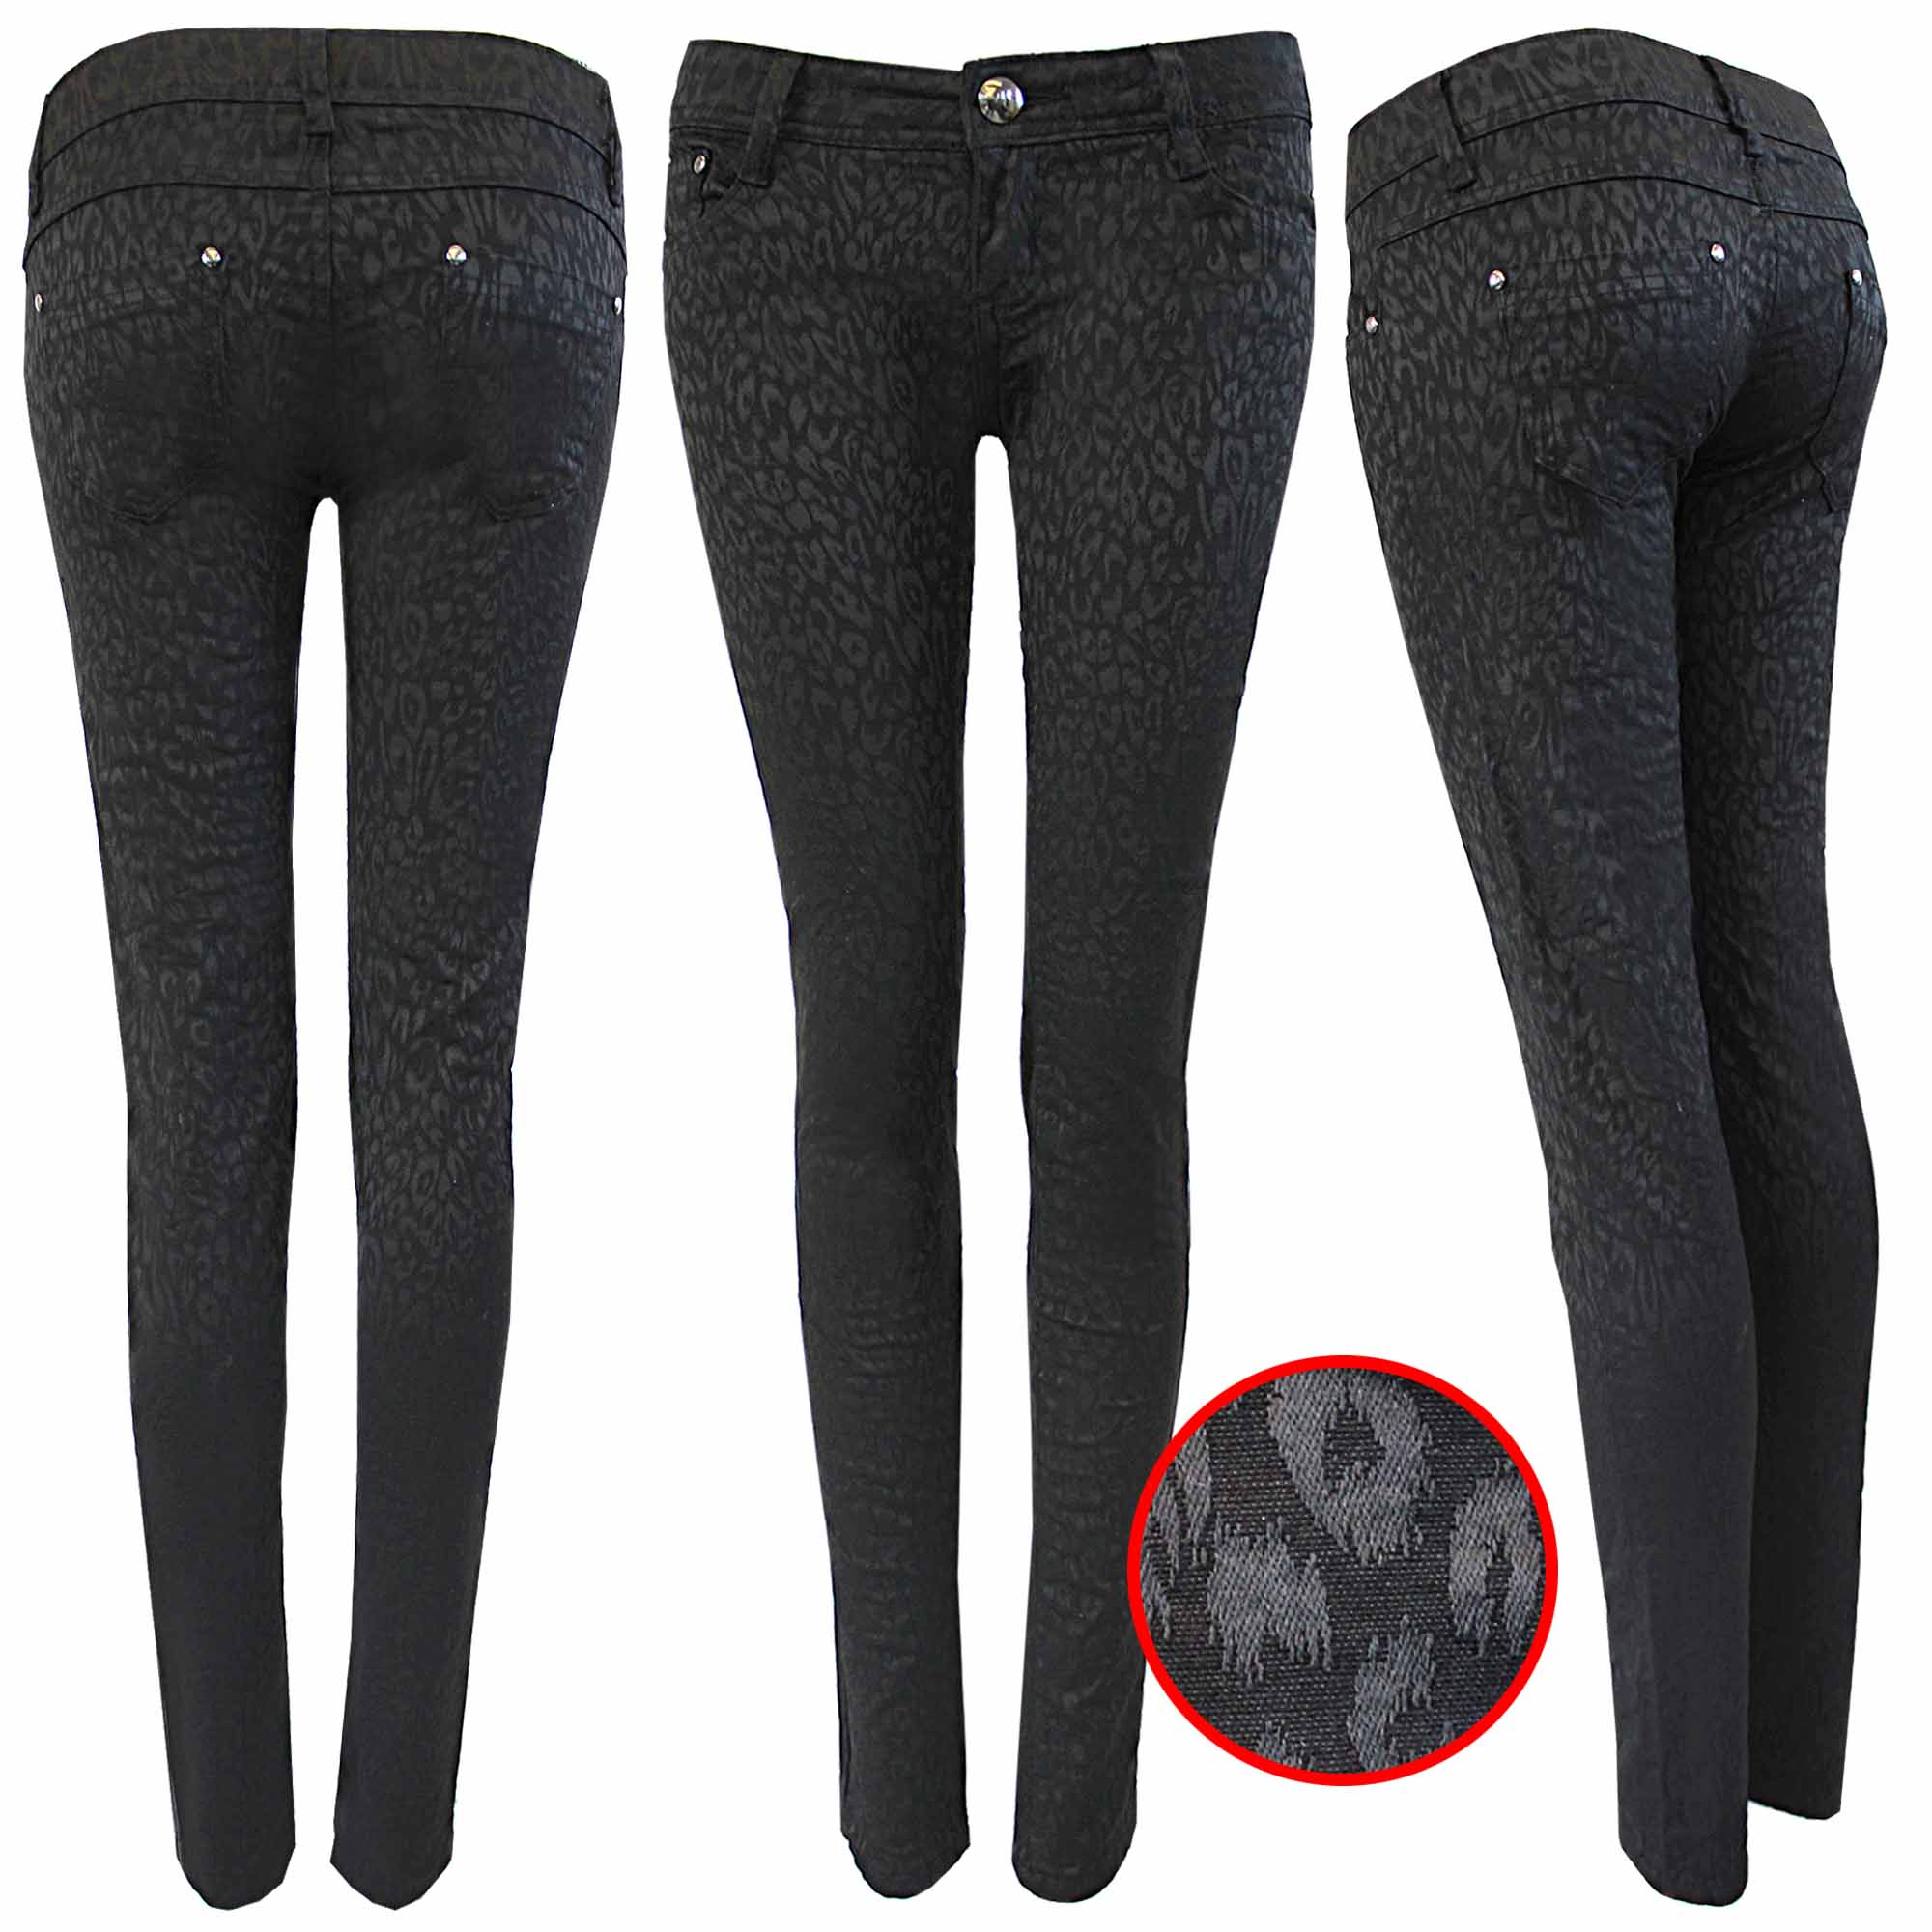 NEW WOMENS LADIES BLACK LEOPARD PRINT JEANS SKINNY STRETCH DENIM ...